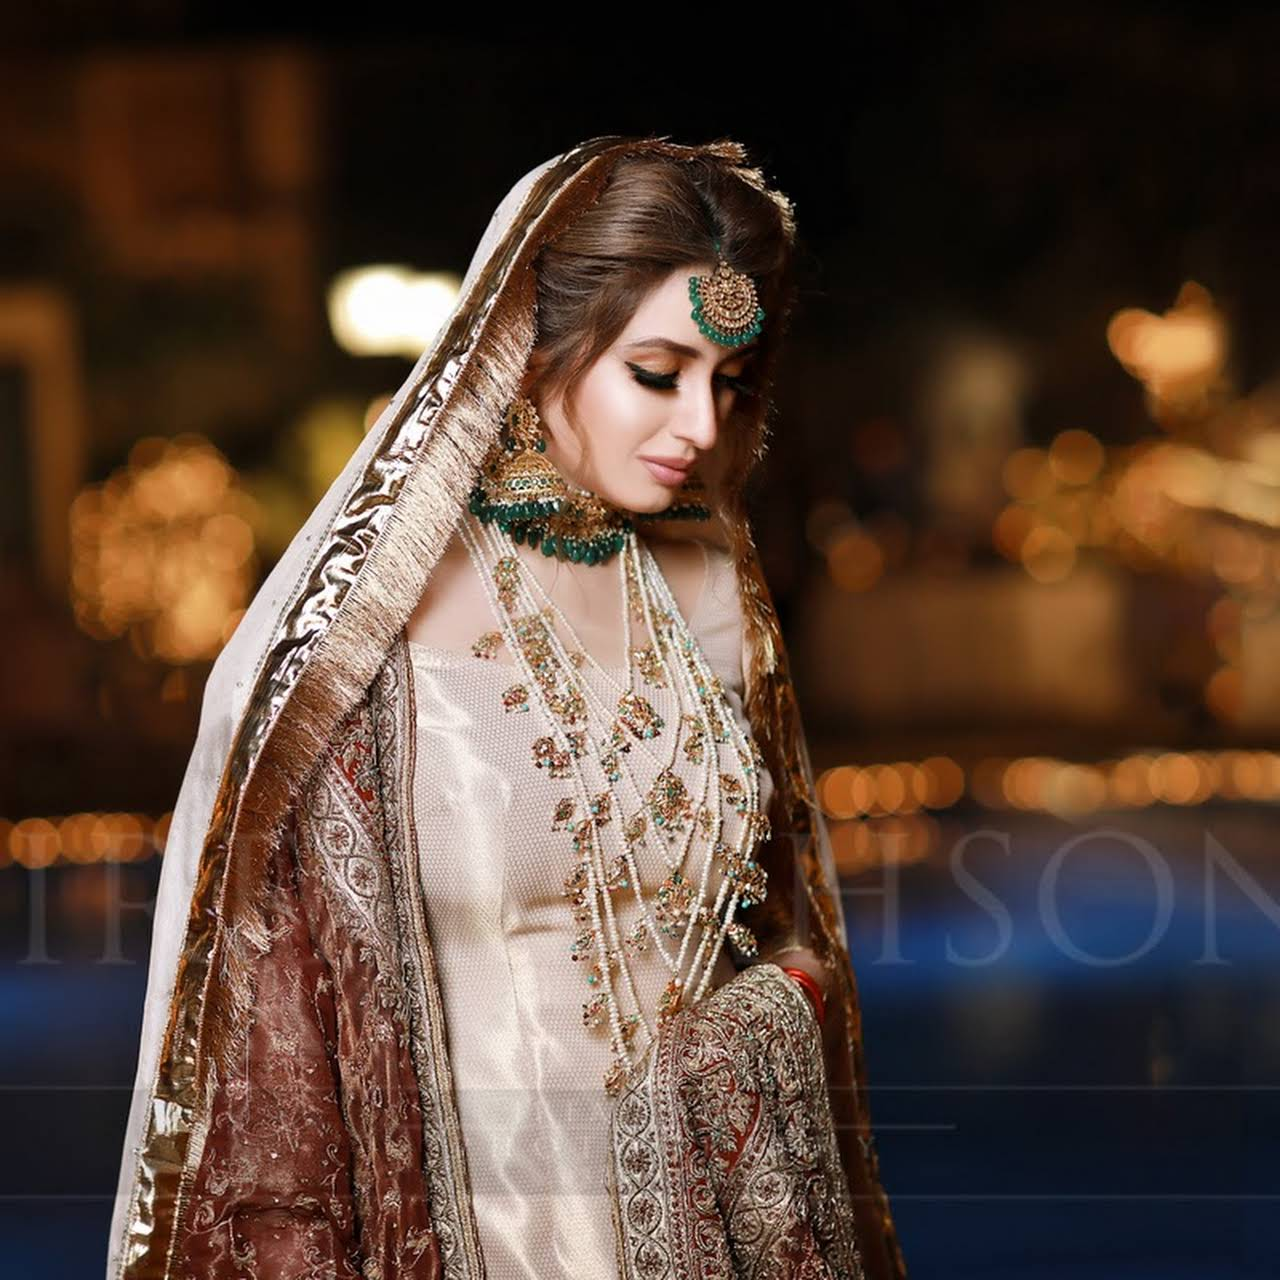 Fine Art Weddings by Irfan Ahson - Wedding photographer in Lahore